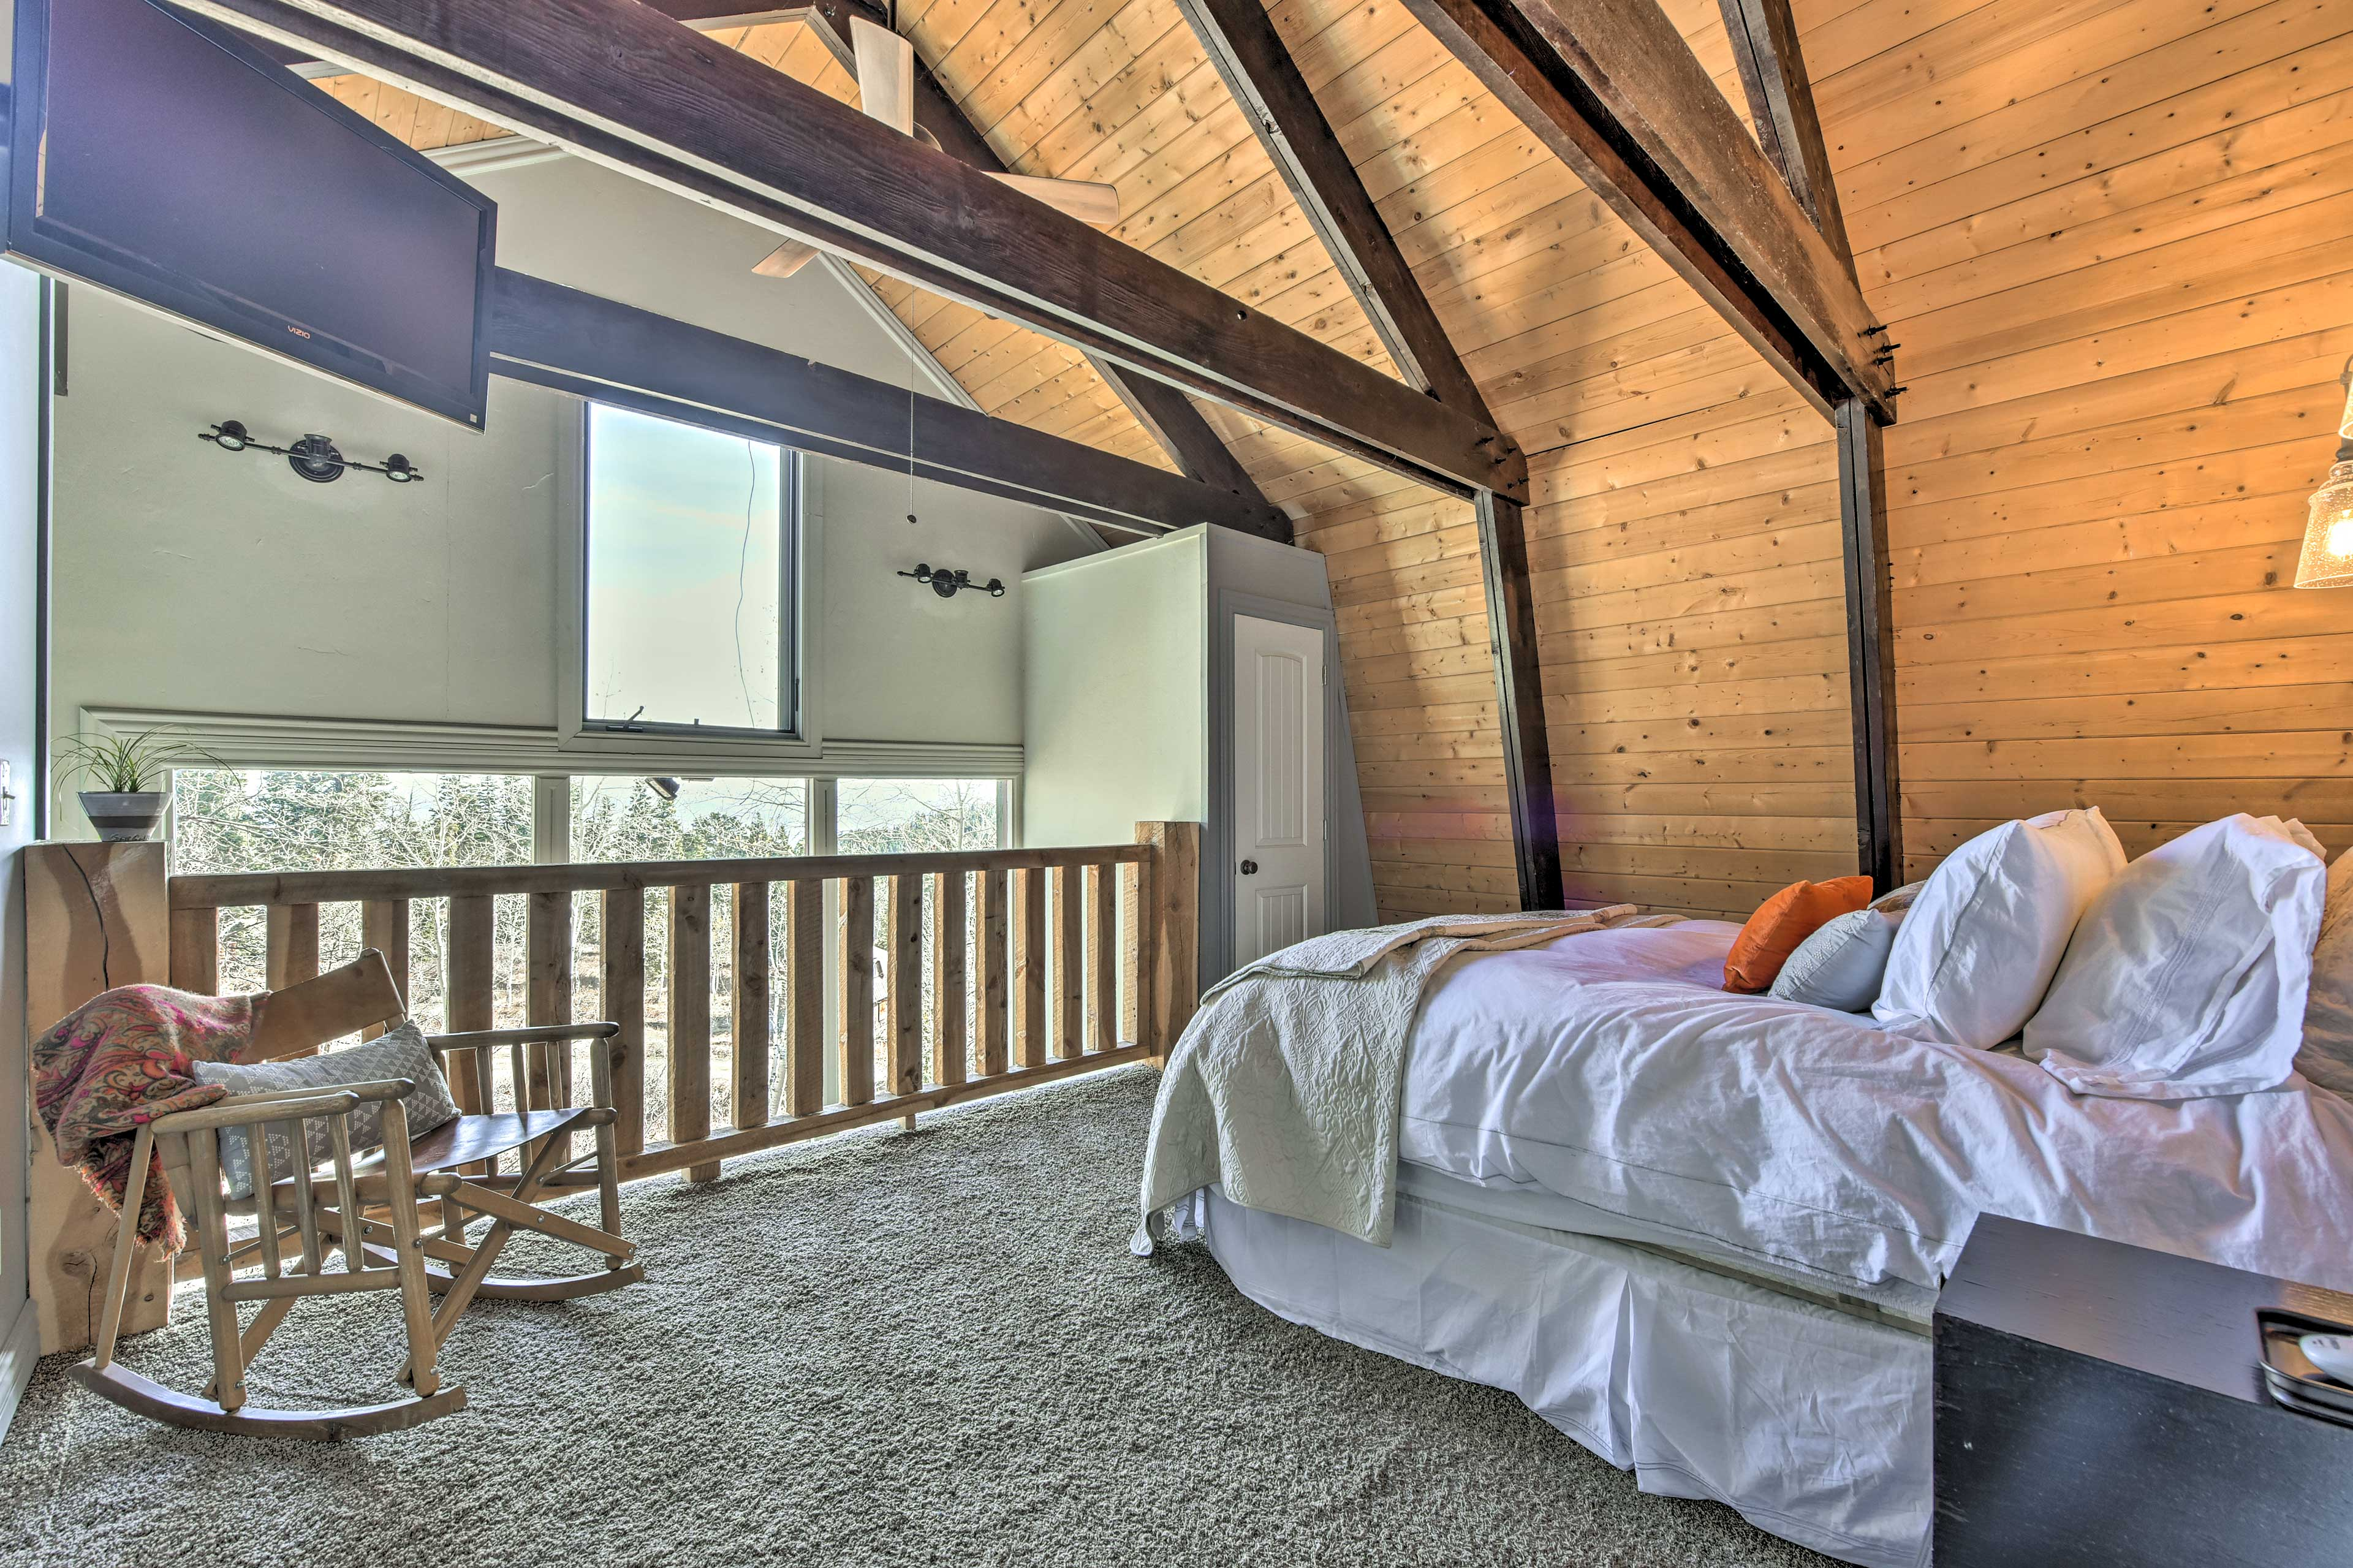 The lofted master bedroom includes a queen bed and cable TV.